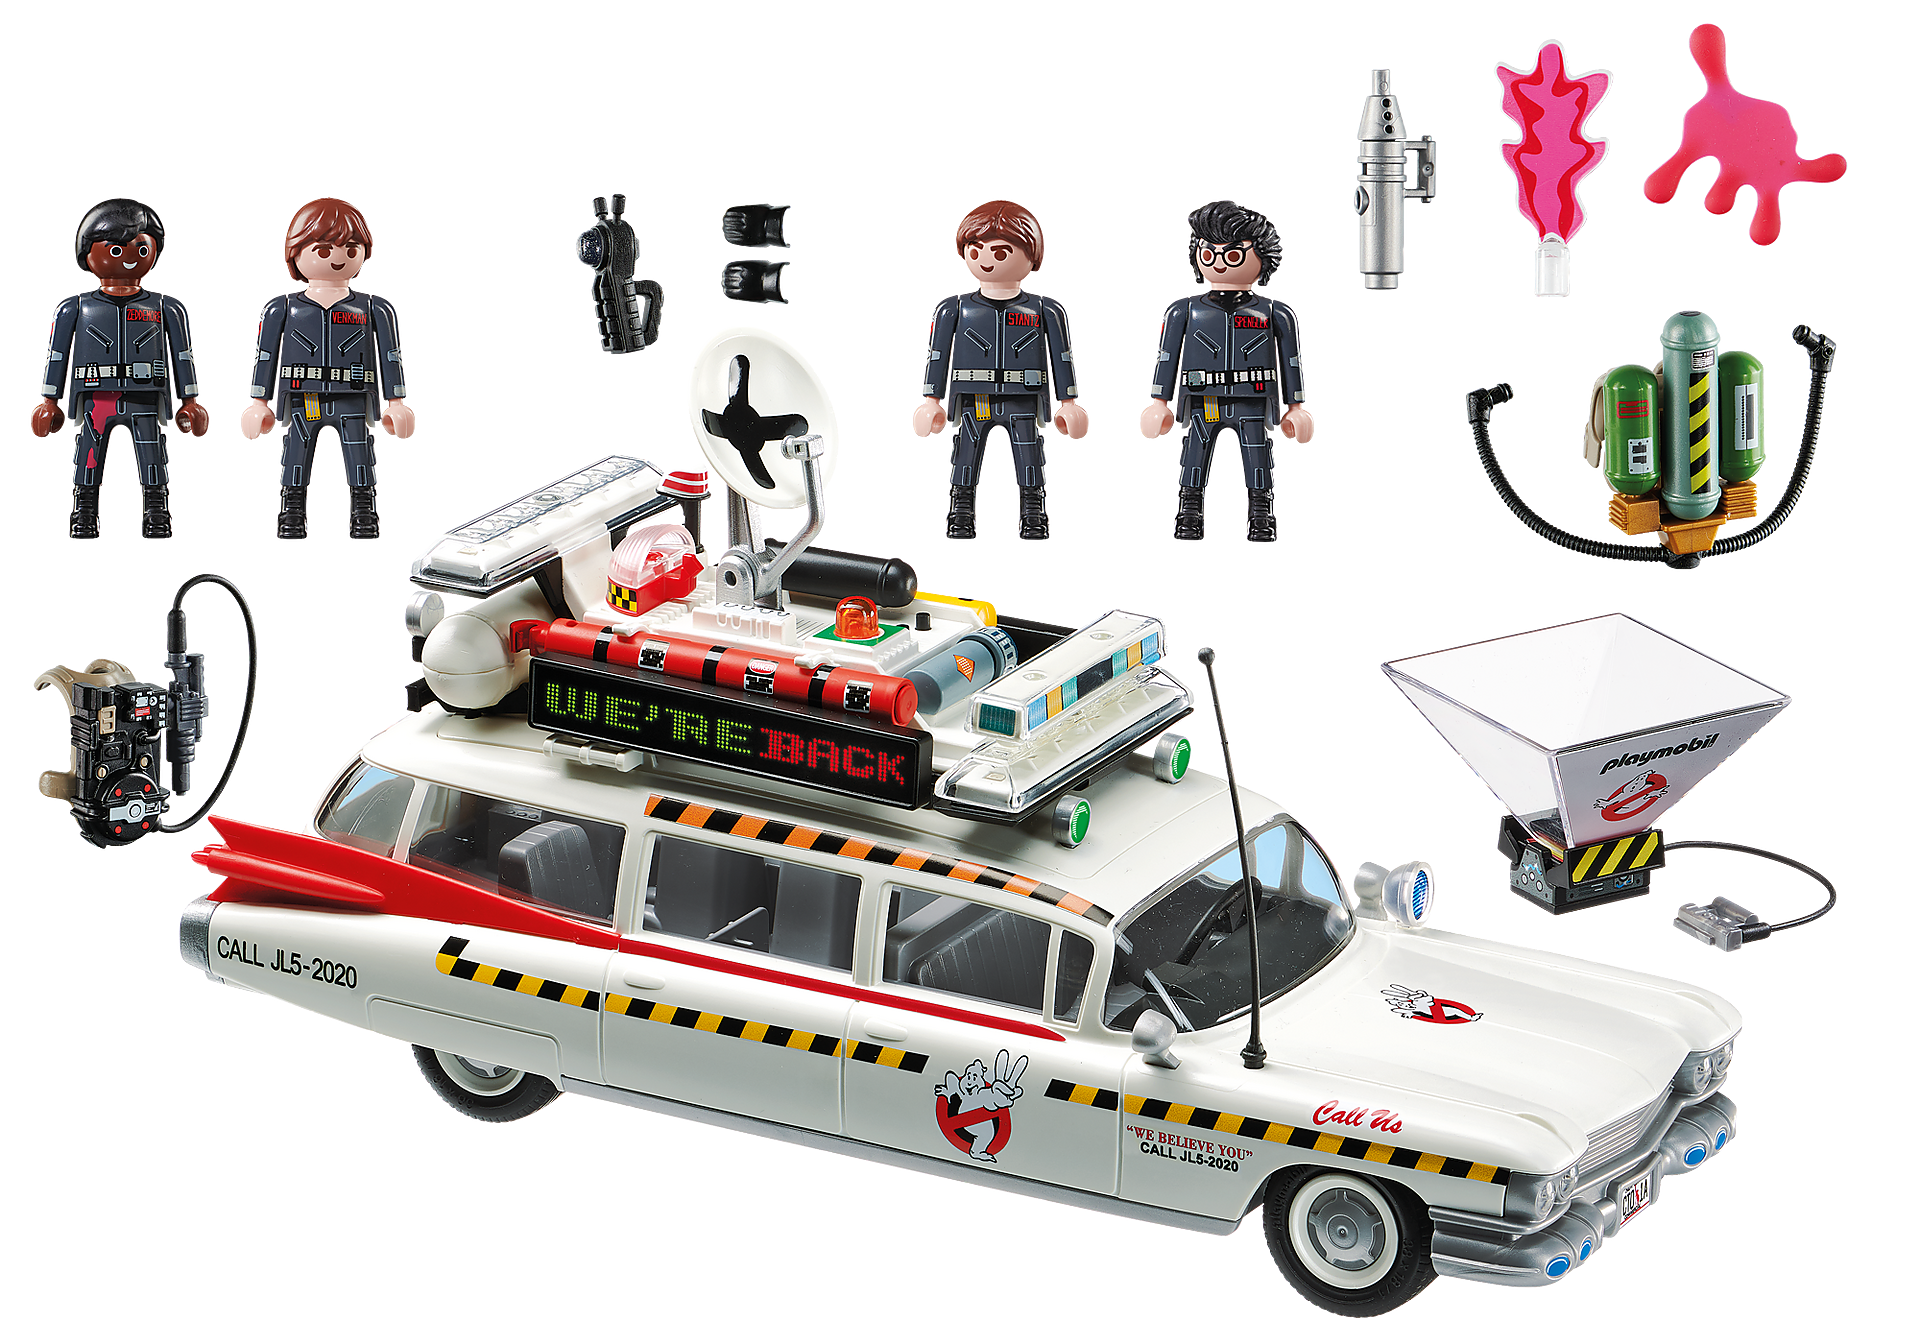 70170 Ghostbusters™ Ecto-1A zoom image4